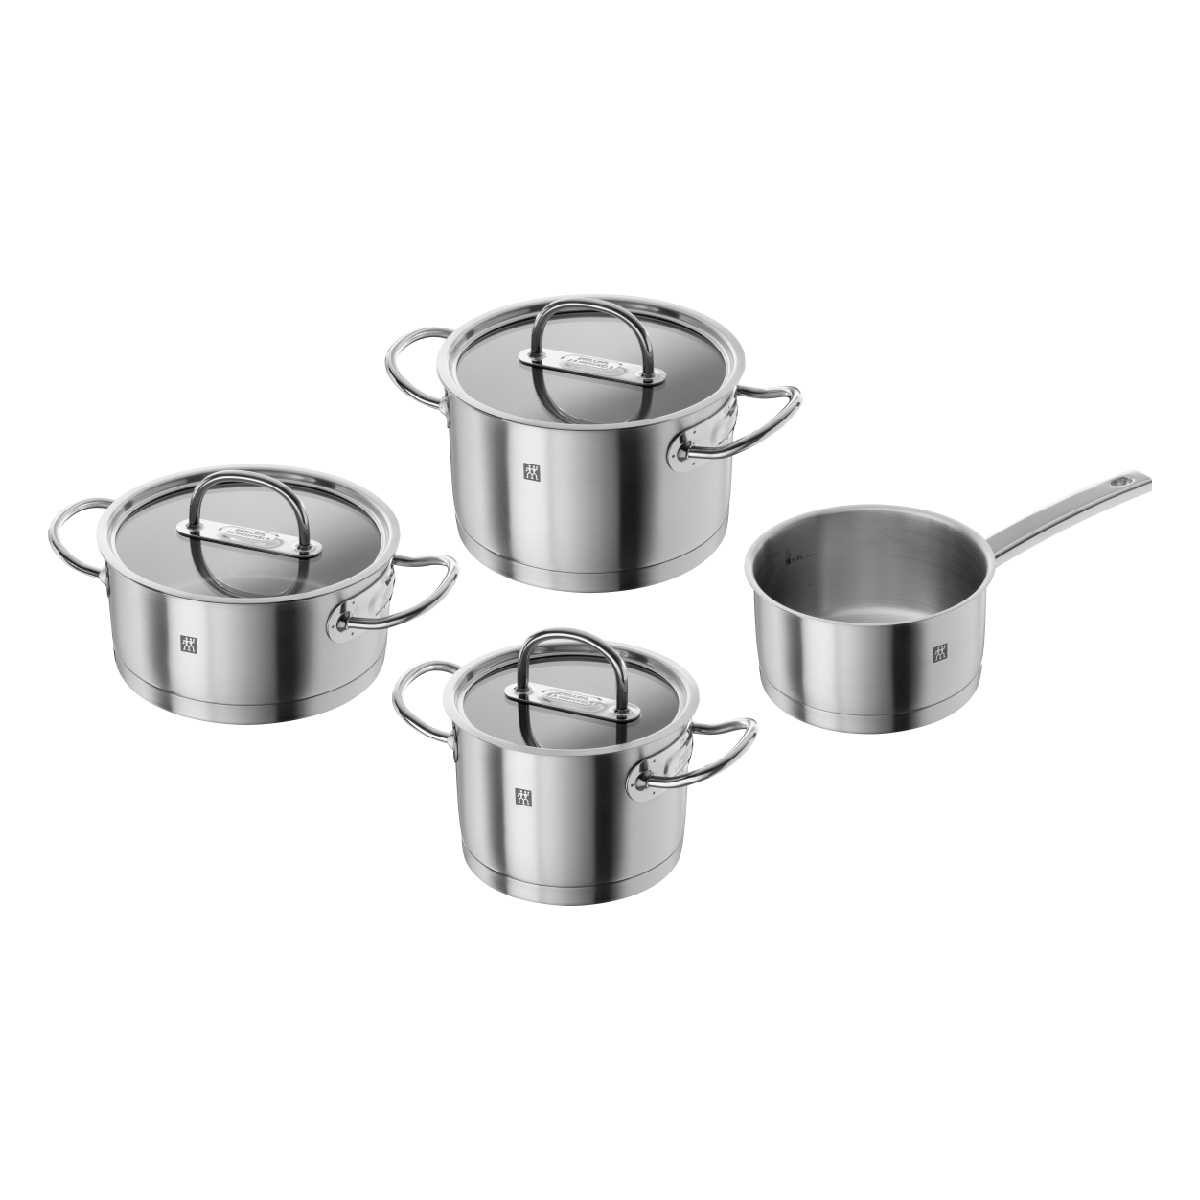 ZWILLING - ZWILLING Prime cookware set - 4pcs